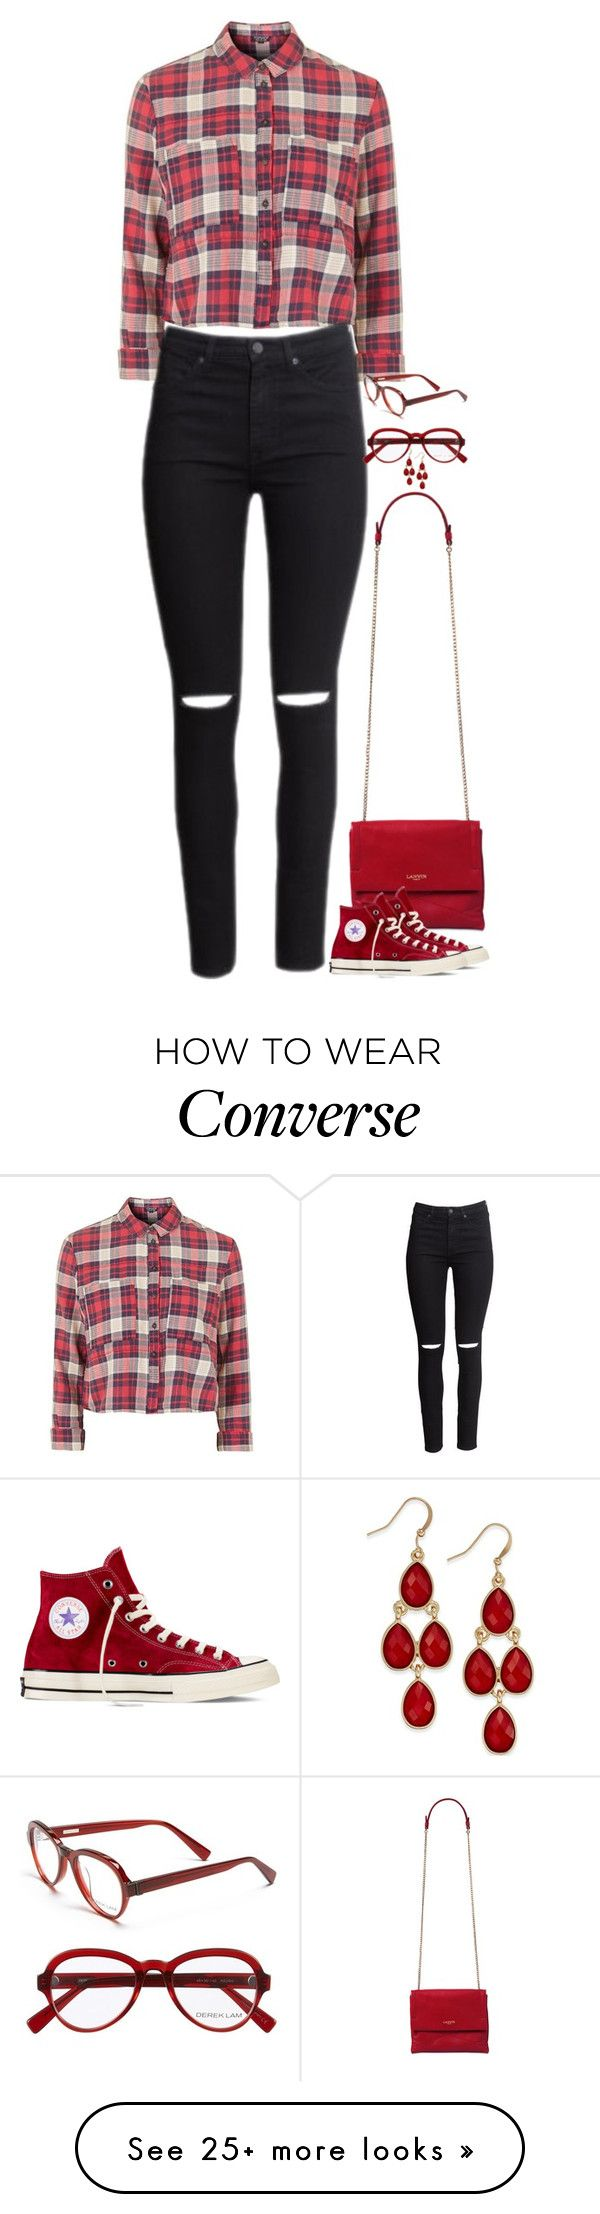 """""""Untitled #4529"""" by miki006 on Polyvore featuring Topshop, H&M, Style & Co., Derek Lam and Converse"""